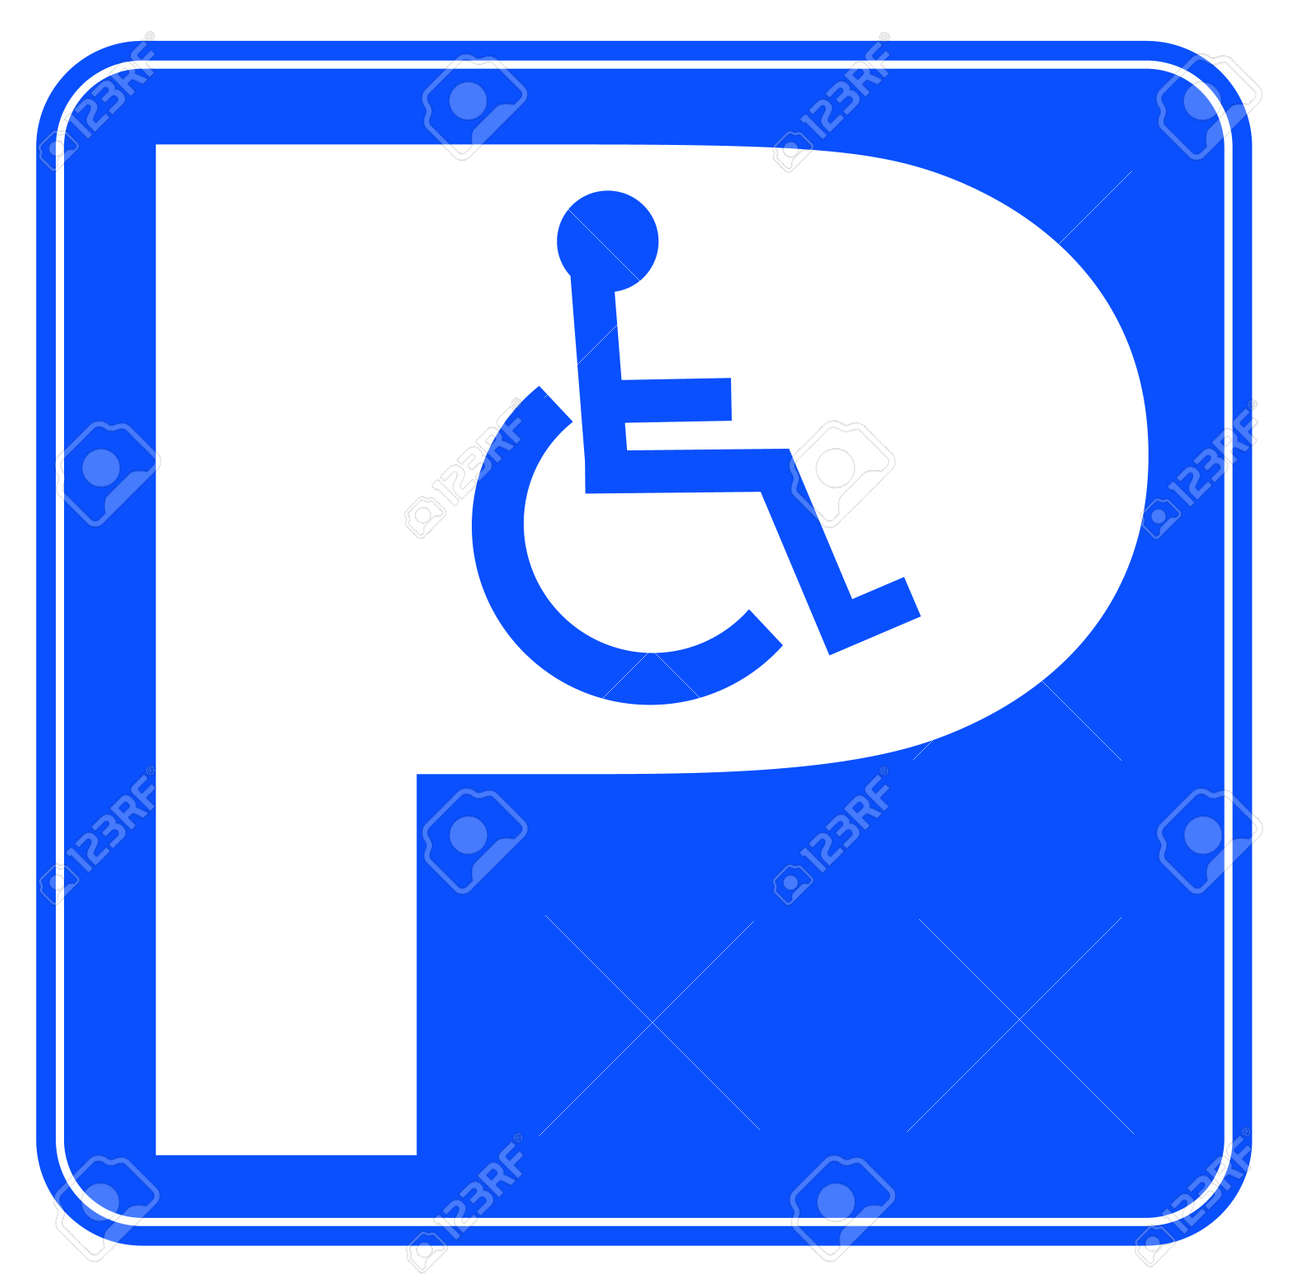 Blue Handicap Parking Or Wheelchair Parking Space Sign Royalty ...